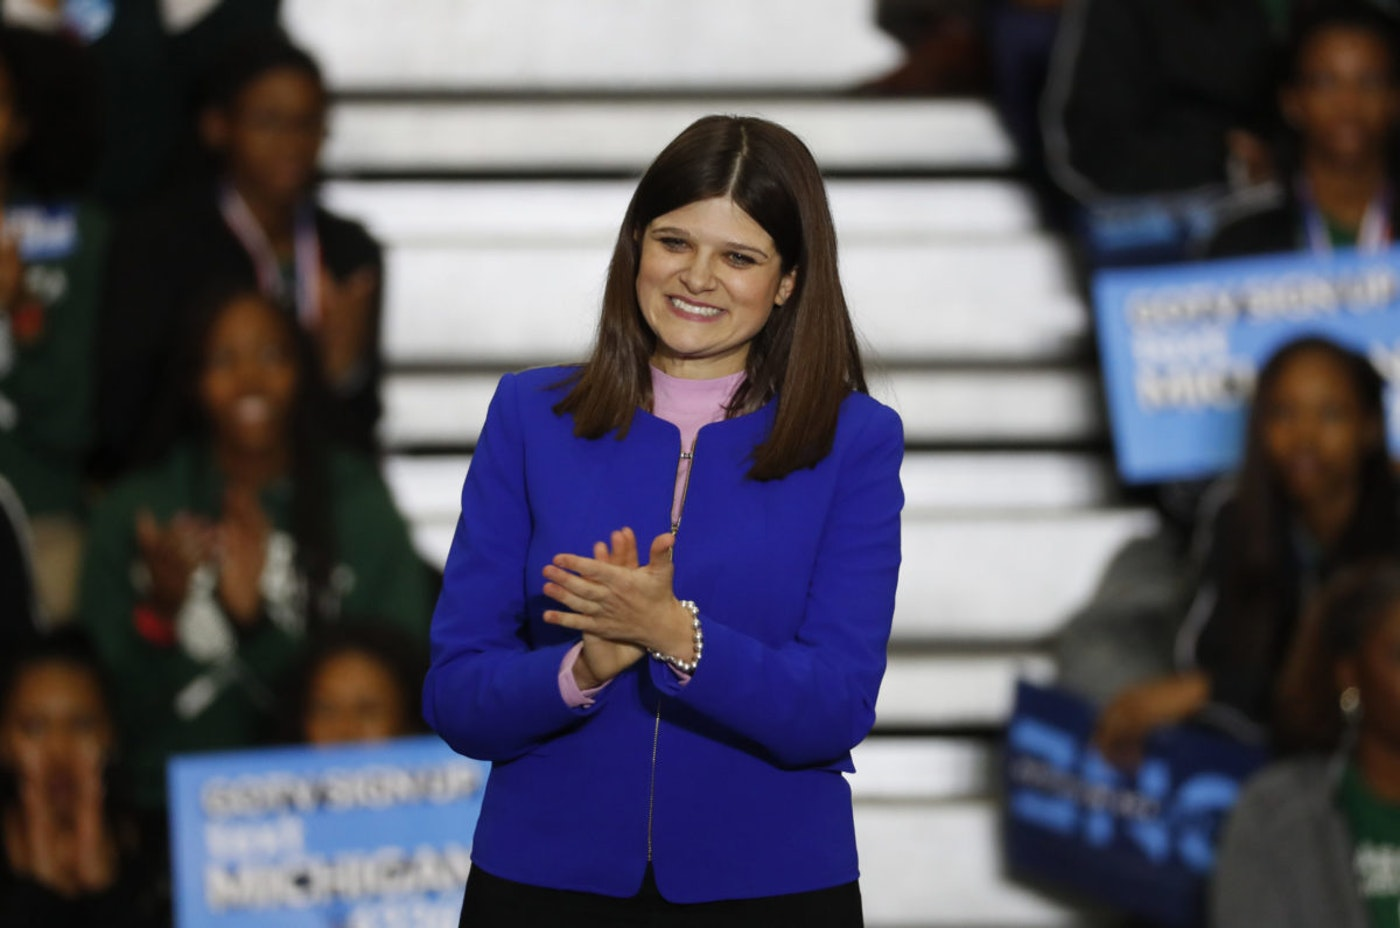 Haley Stevens, a Democratic congressional candidate appears during a rally in Detroit Friday, Oct. 26, 2018. (AP Photo/Paul Sancya)